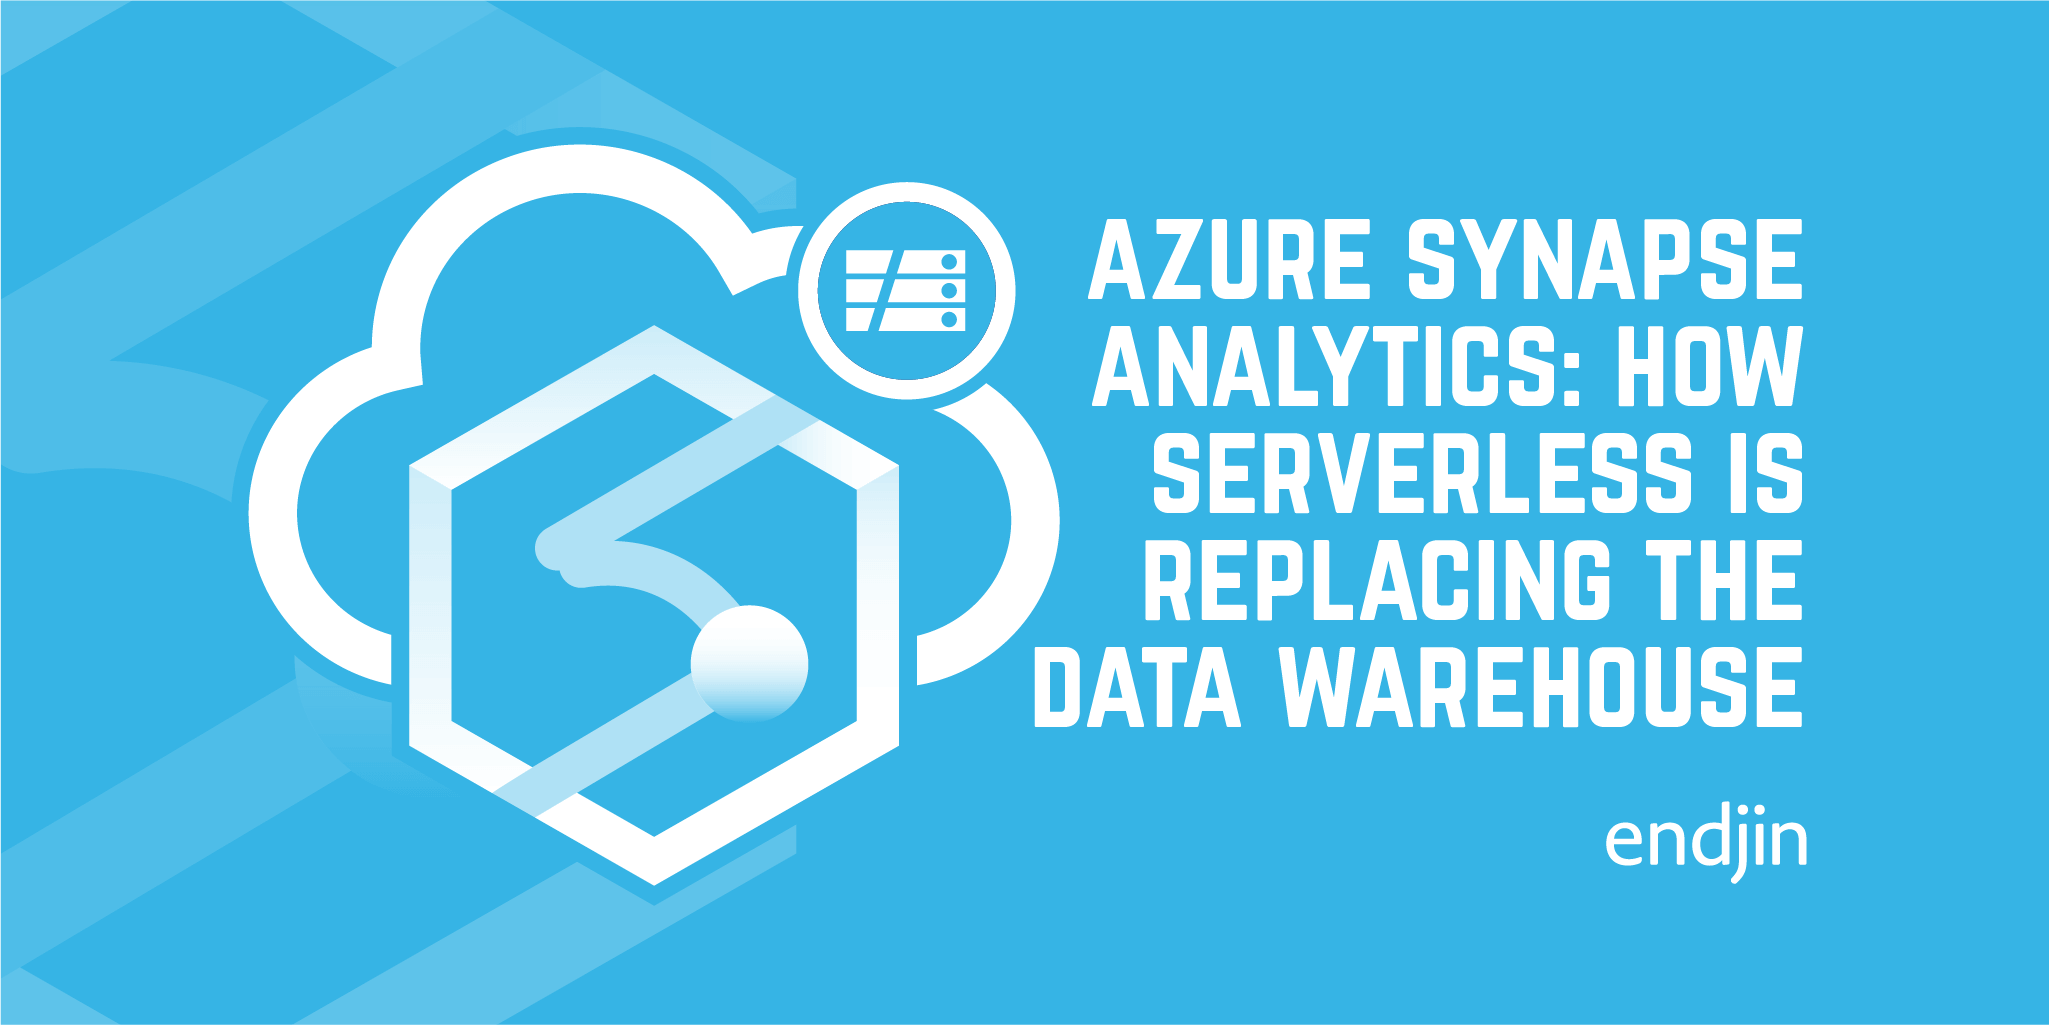 Azure Synapse Analytics: How serverless is replacing the data warehouse